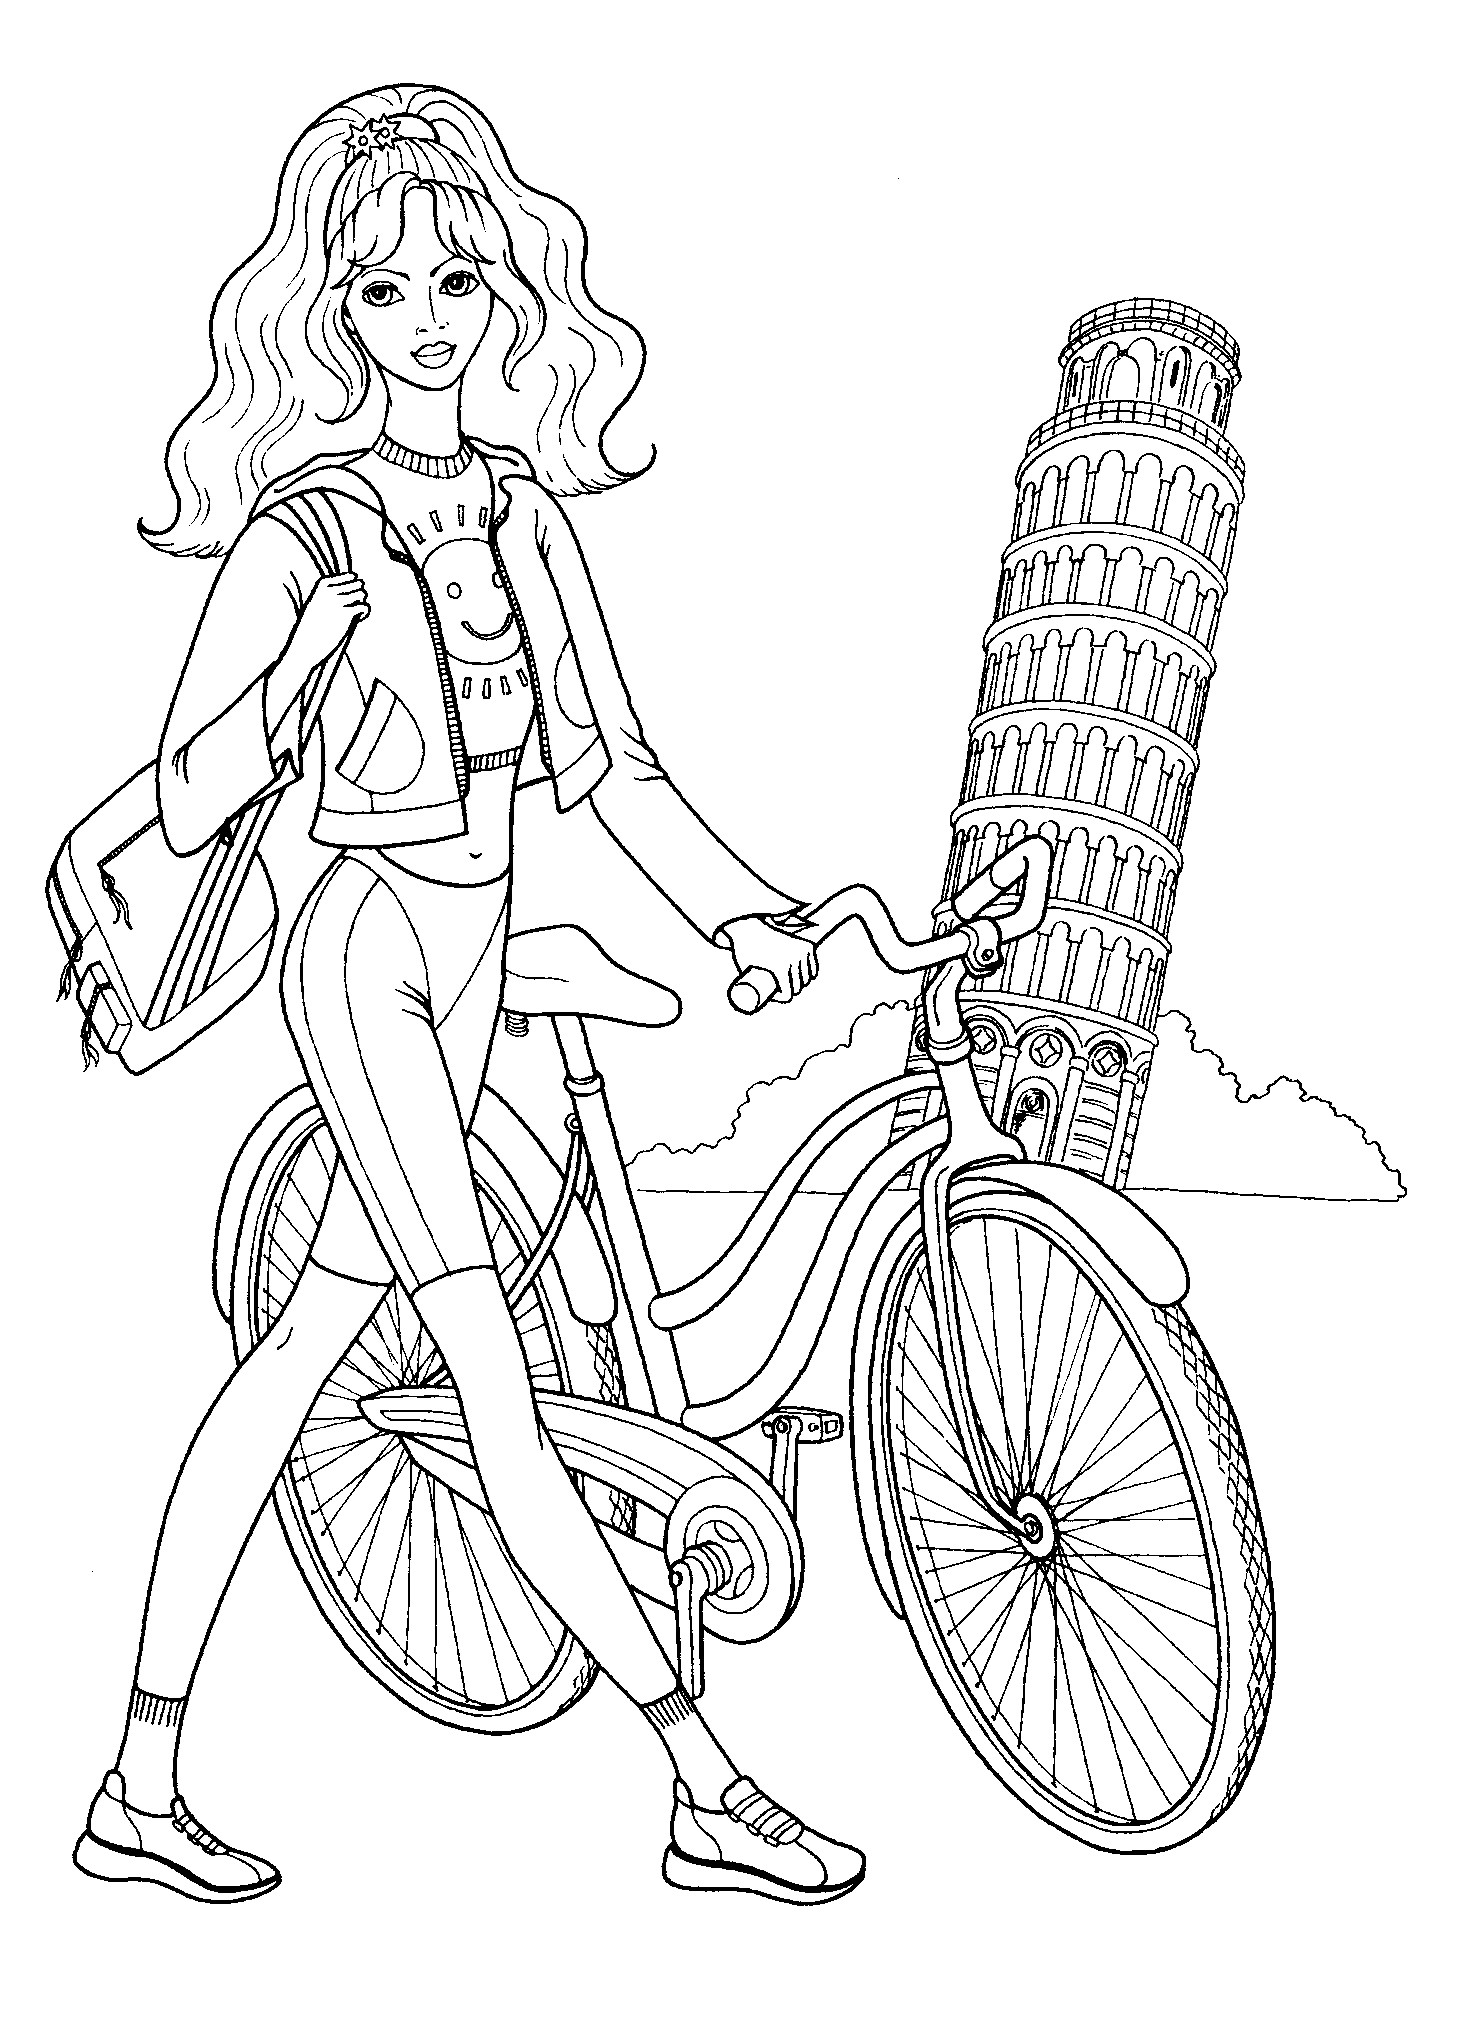 coloring pages women coloring pages for girls best coloring pages for kids pages women coloring